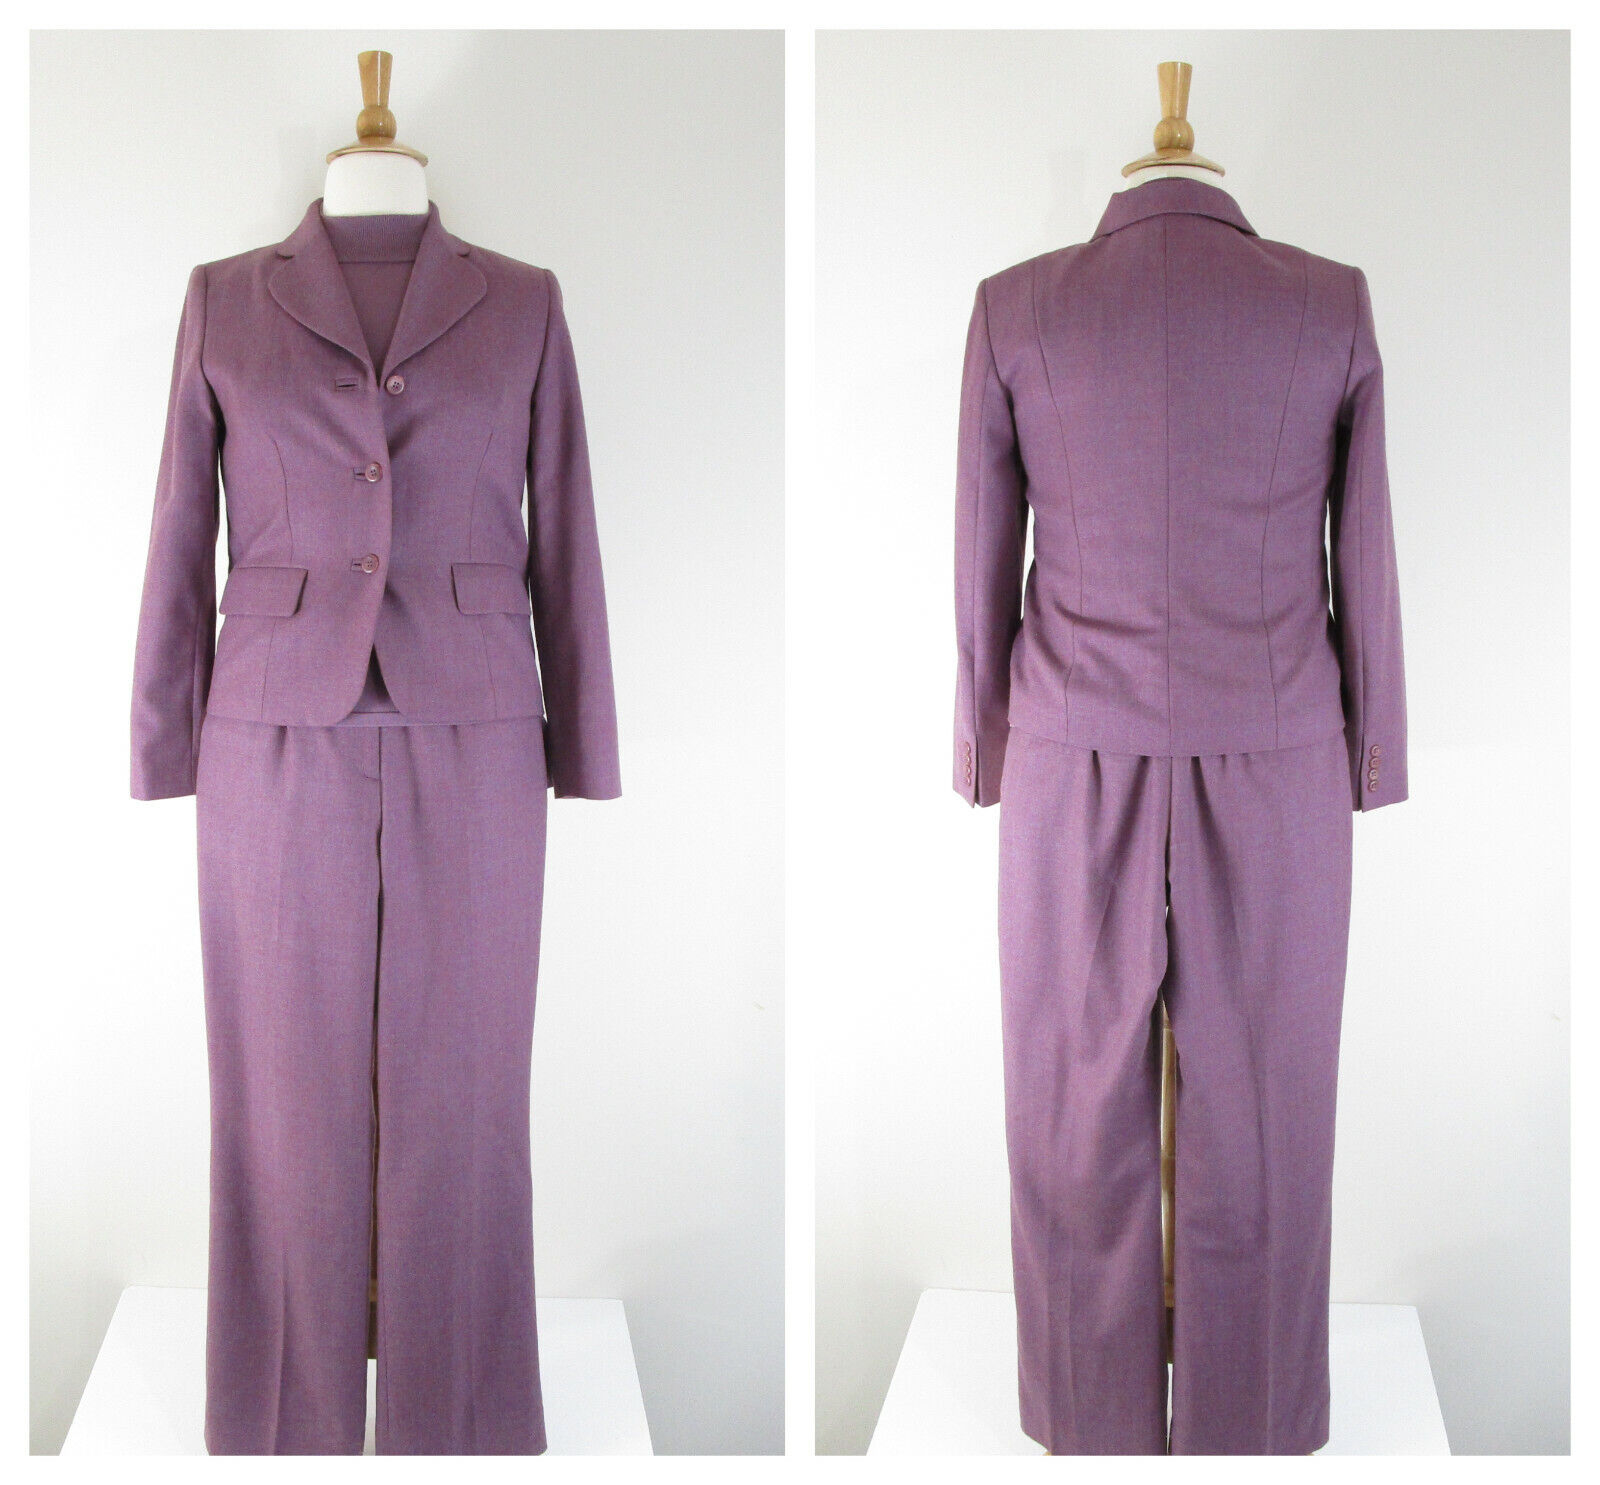 Pendleton Womens Purple Virgin Wool Mock Neck 3 Piece Pant Suit 12 M Career